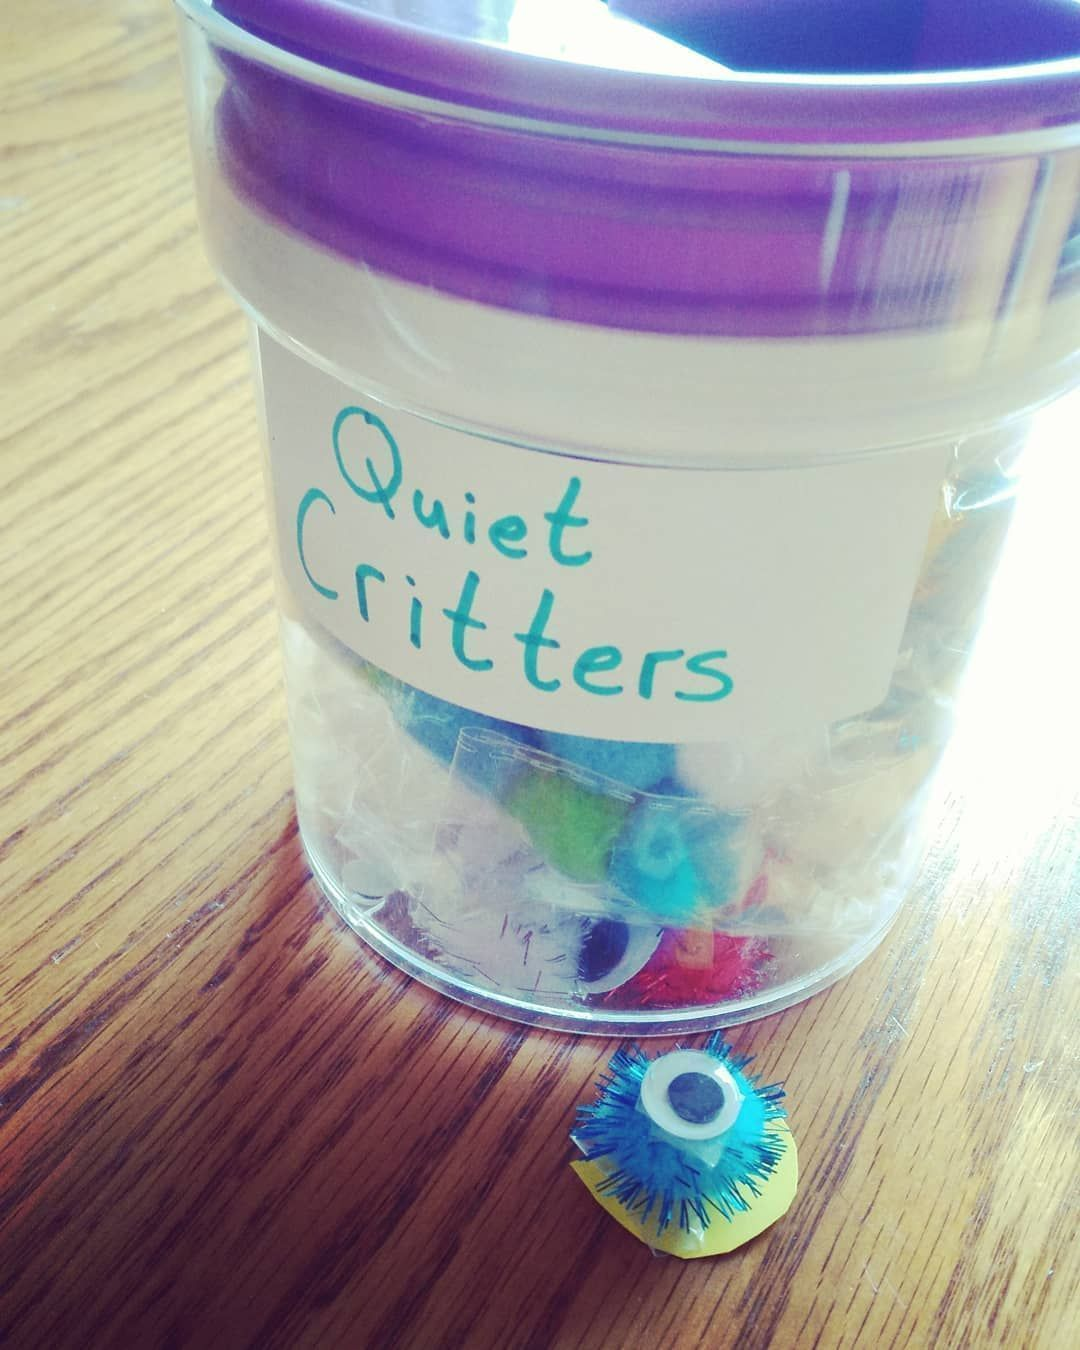 Quiet Critters are a great behaviour management tool! I make it super theatrical when it's time for the Quiet Critters to come out and explicitly state my expectations when the Quiet Critters are out. I use these little guys in conjunction with my Voice Levels chart. The kids grow such an attachment to their Quiet Critter so the threat of taking it away and putting% #quietcritters Quiet Critters are a great behaviour management tool! I make it super theatrical when it's time for the Quiet Critte #quietcritters